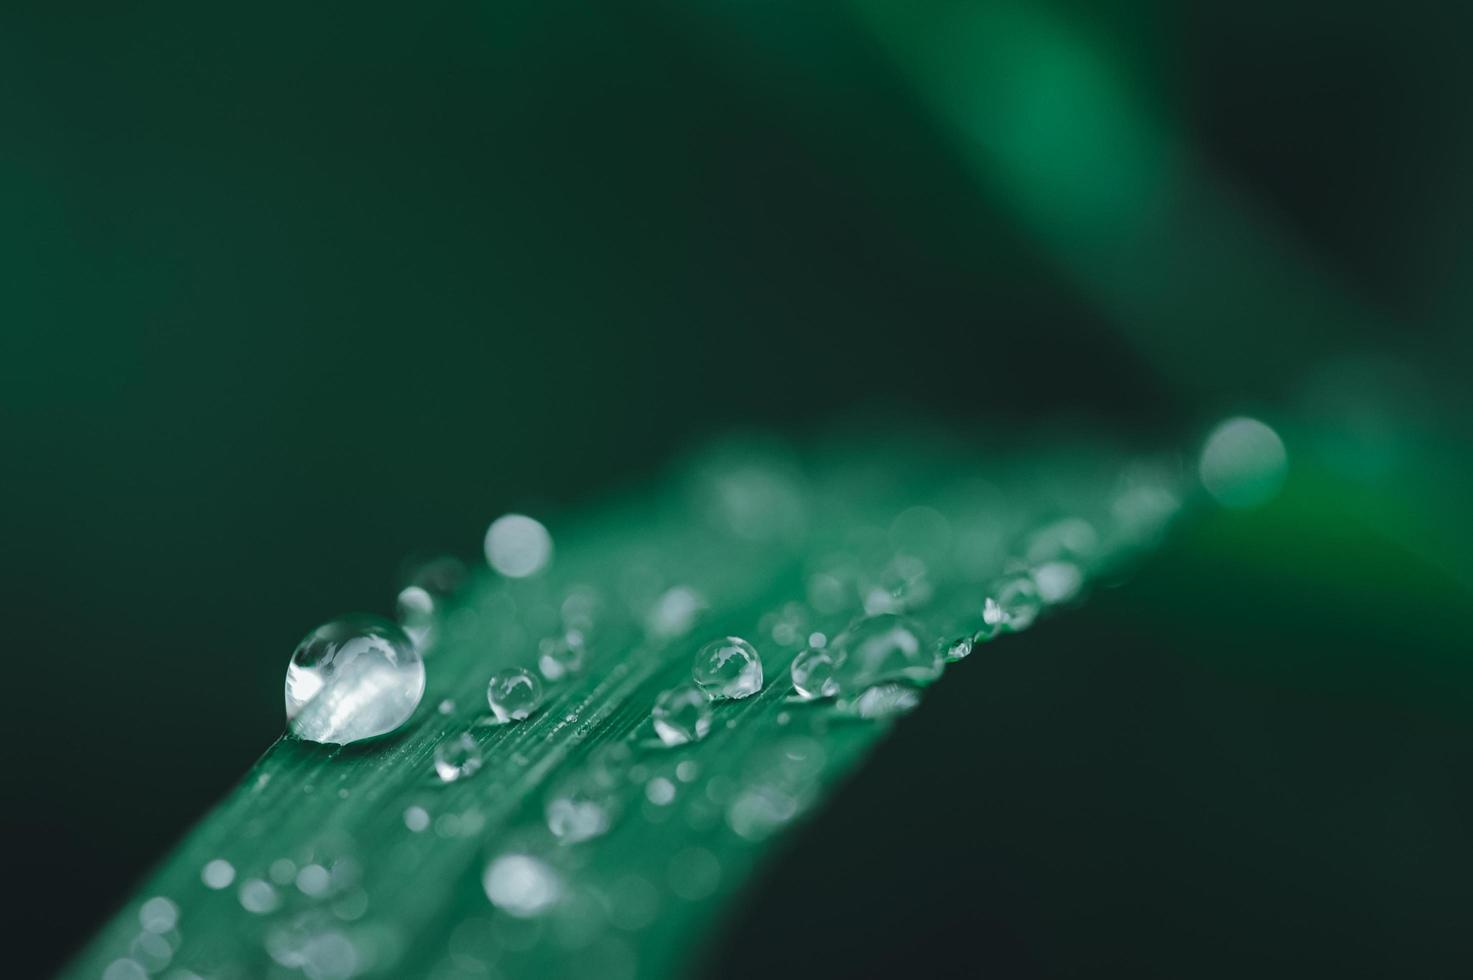 Water droplets green blade leaf photo